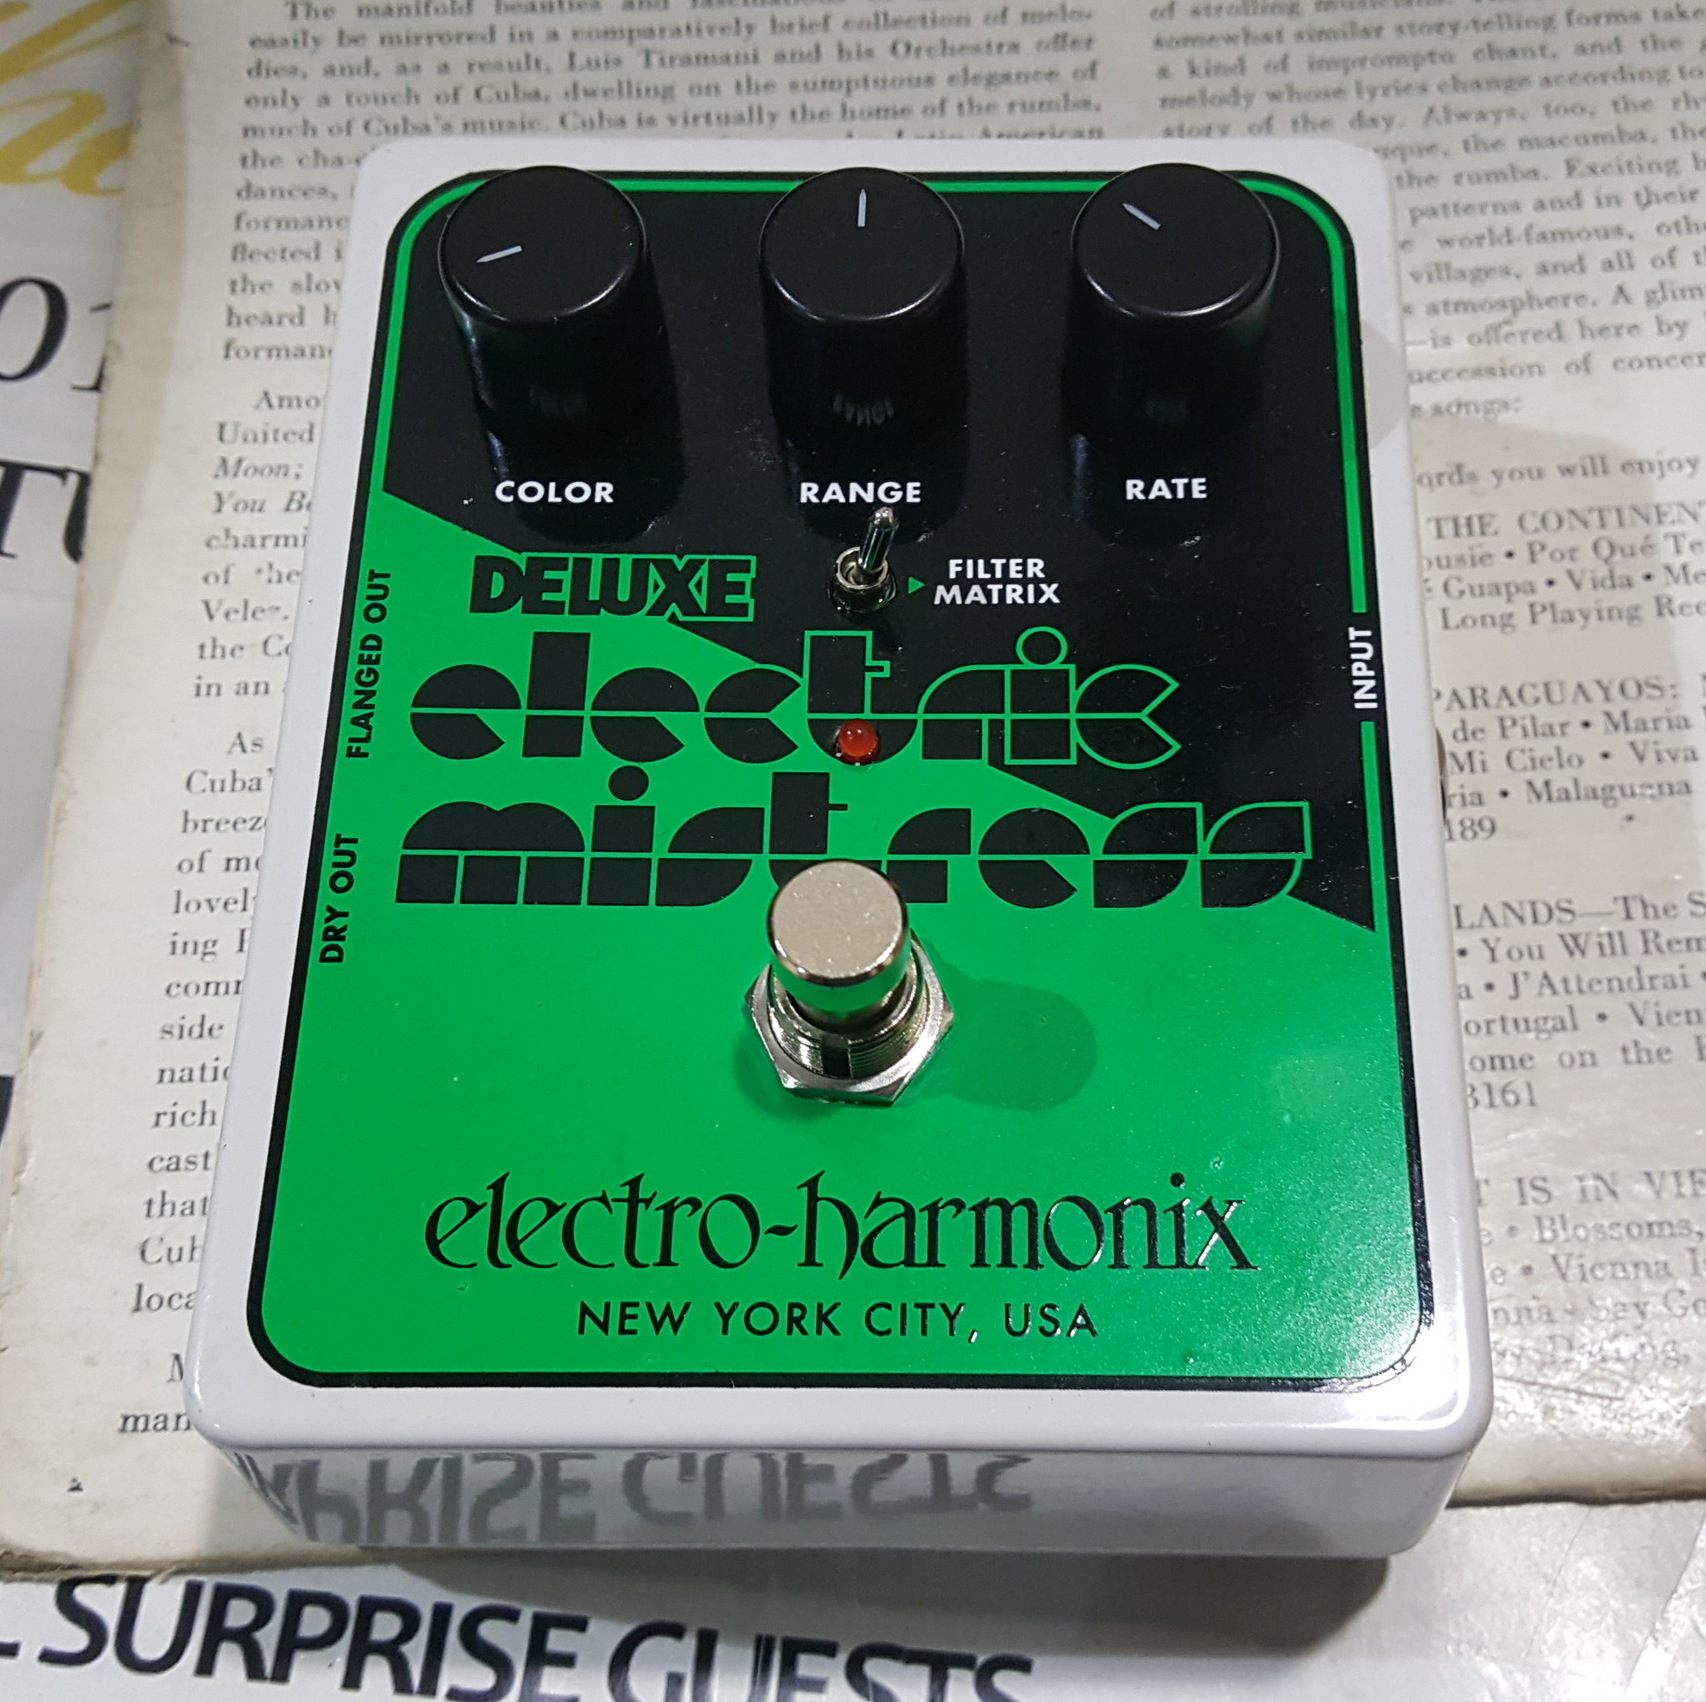 ELECTRO-HARMONIX DELUXE ELECTRIC MISTRESS Guitar Effects Fx Pedal